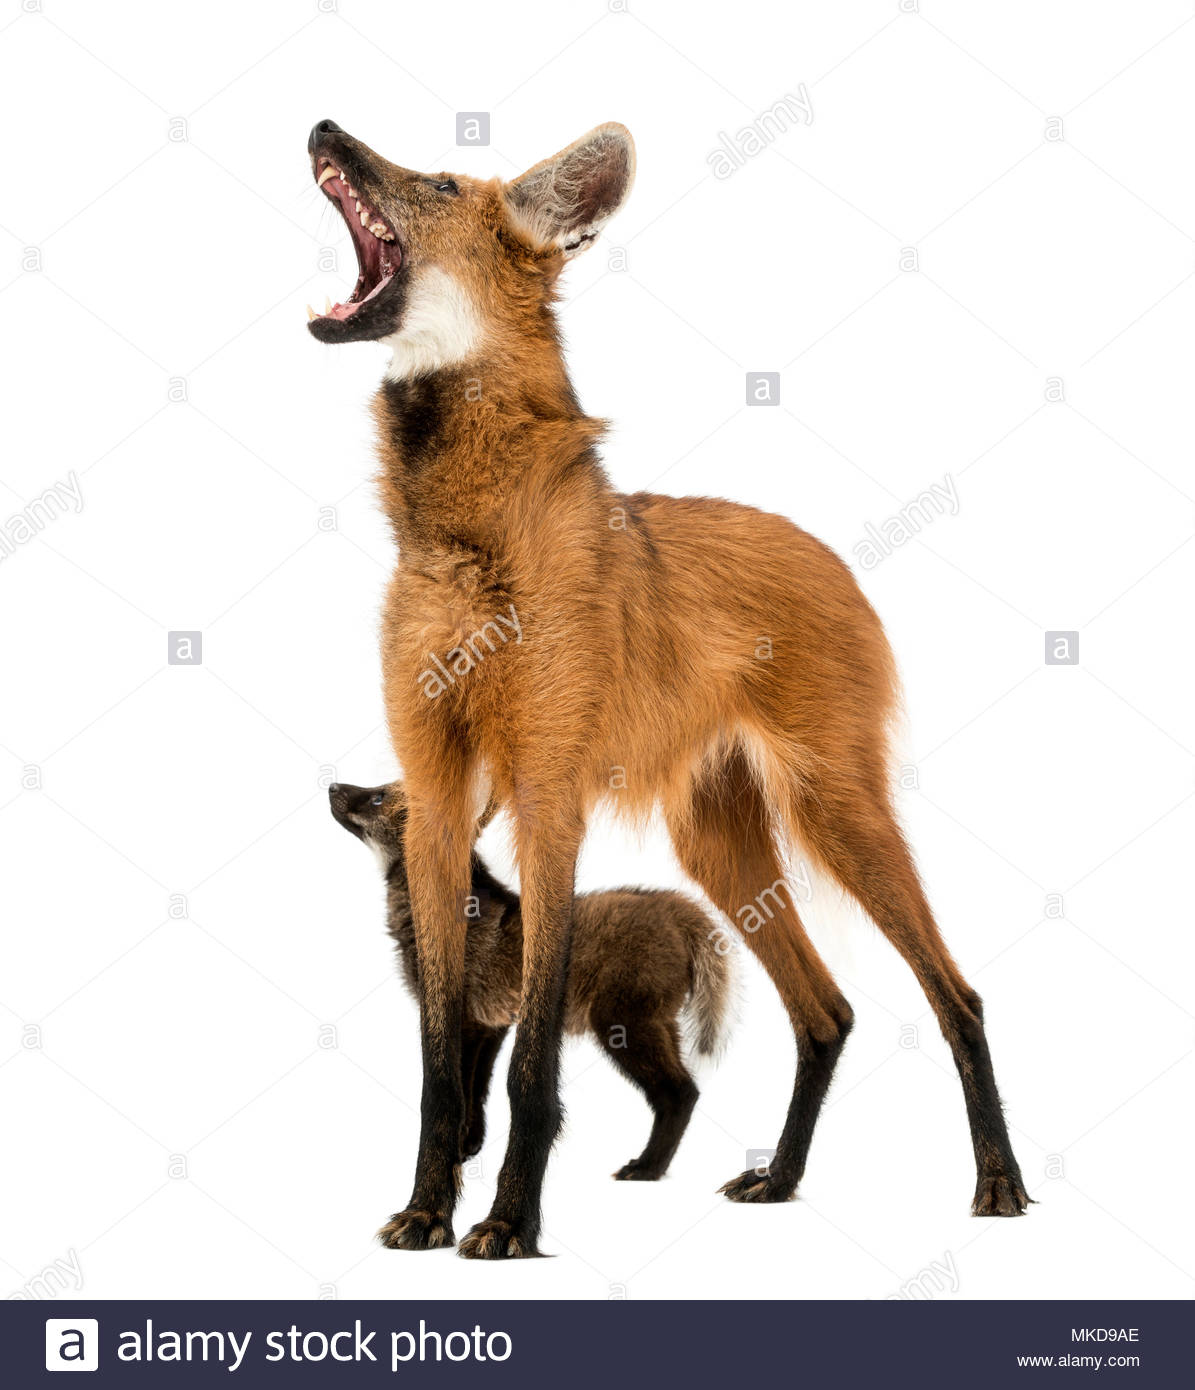 Maned Wolf cub and mom howling, (Chrysocyon brachyurus), isolated on white Mulhouse Zoological and Botanical Park, France - Stock Image